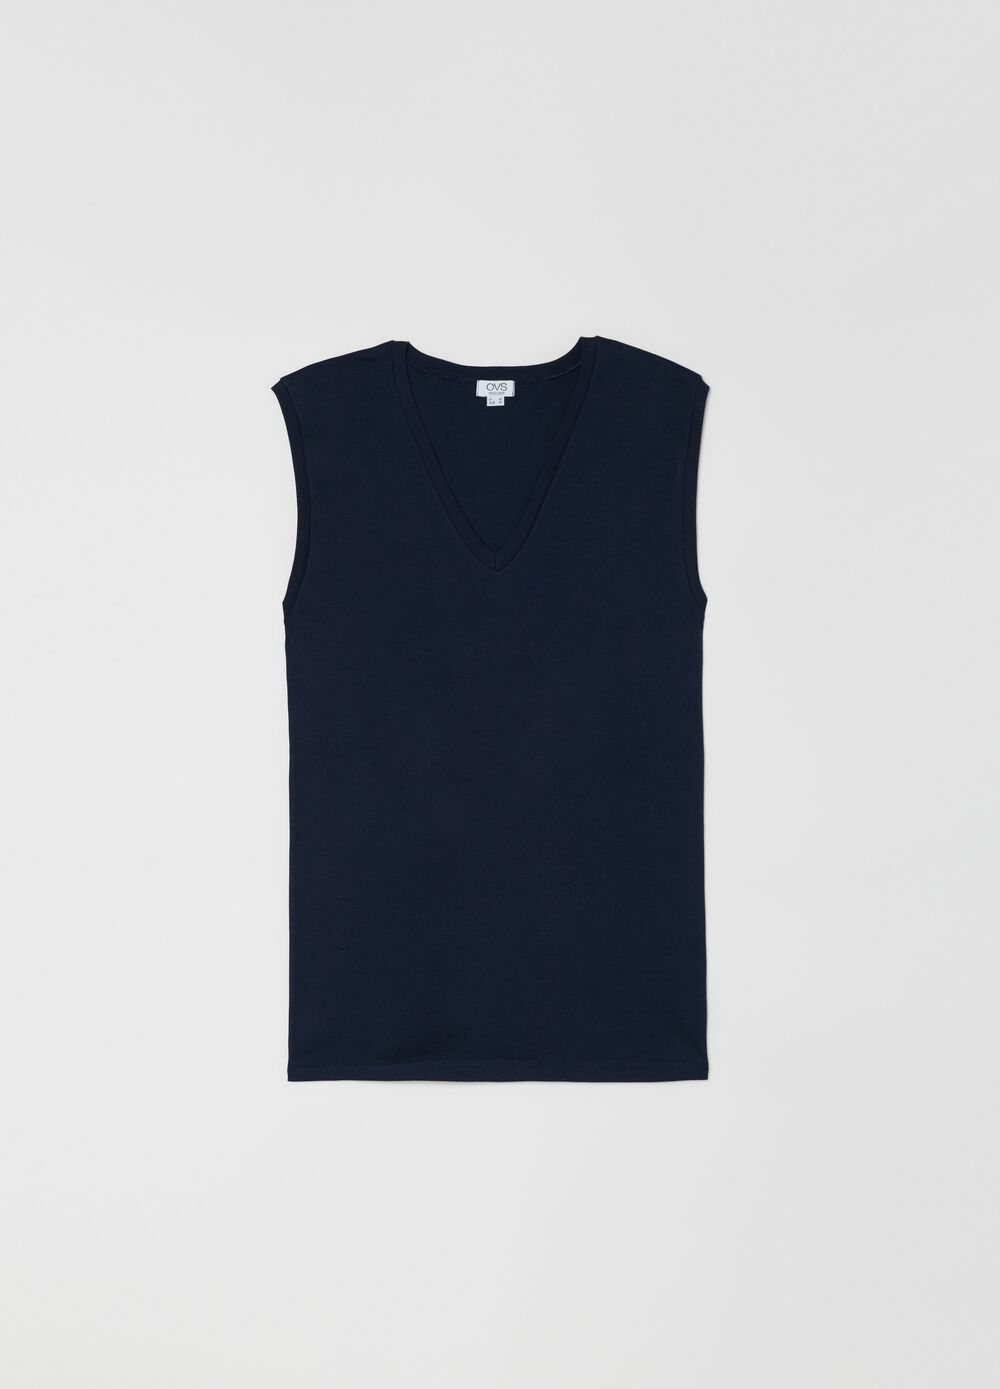 100% cotton V-neck racerback vest